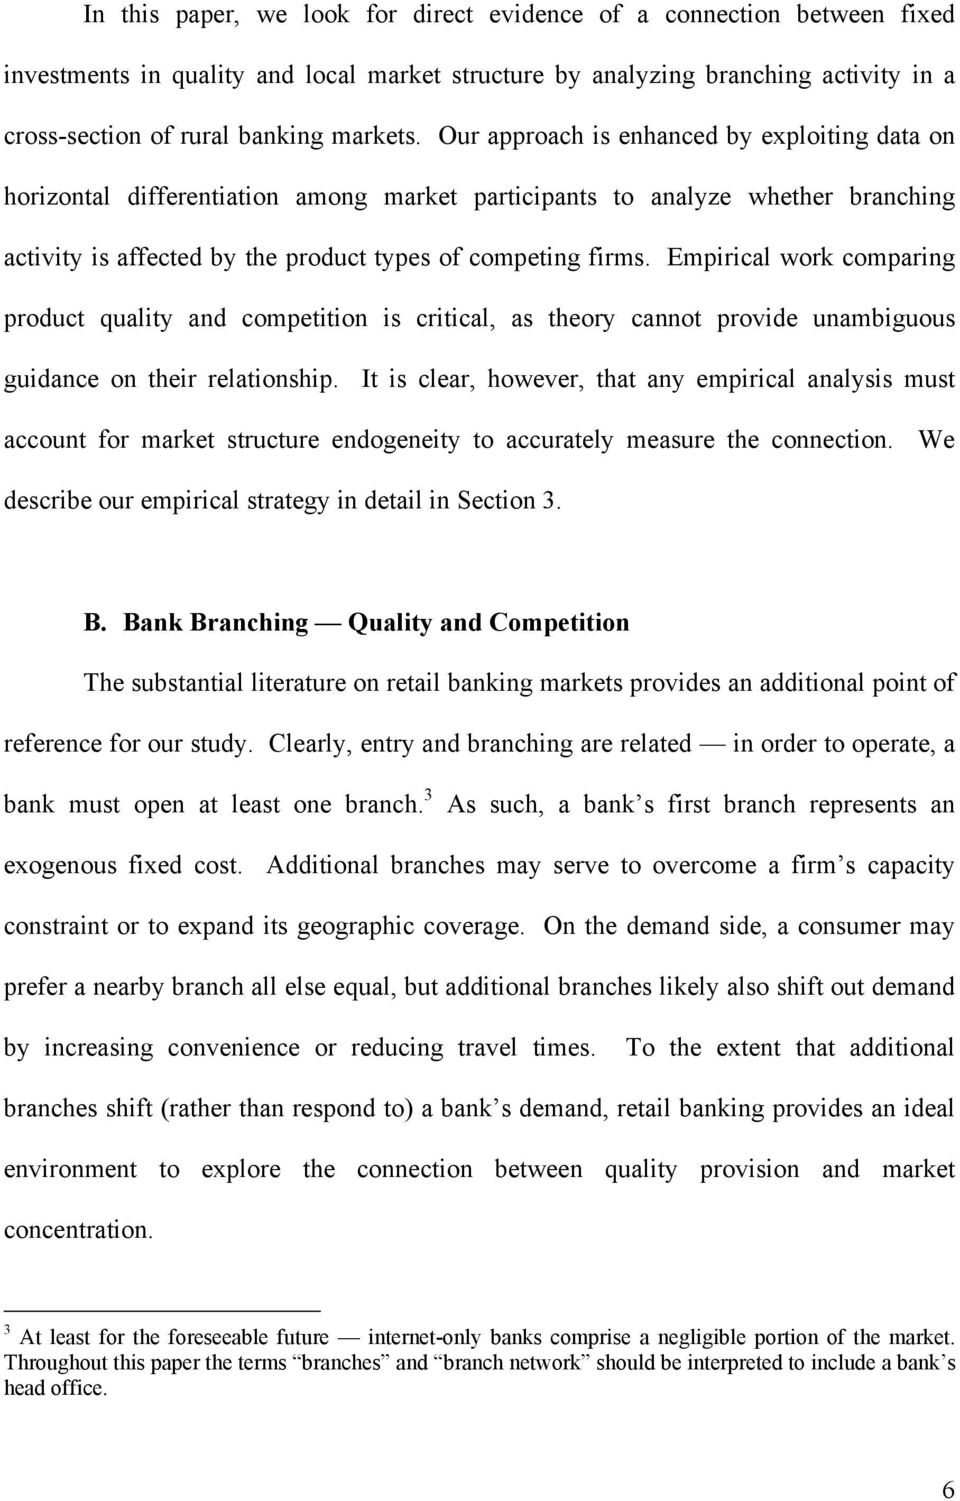 Empirical work comparing product quality and competition is critical, as theory cannot provide unambiguous guidance on their relationship.